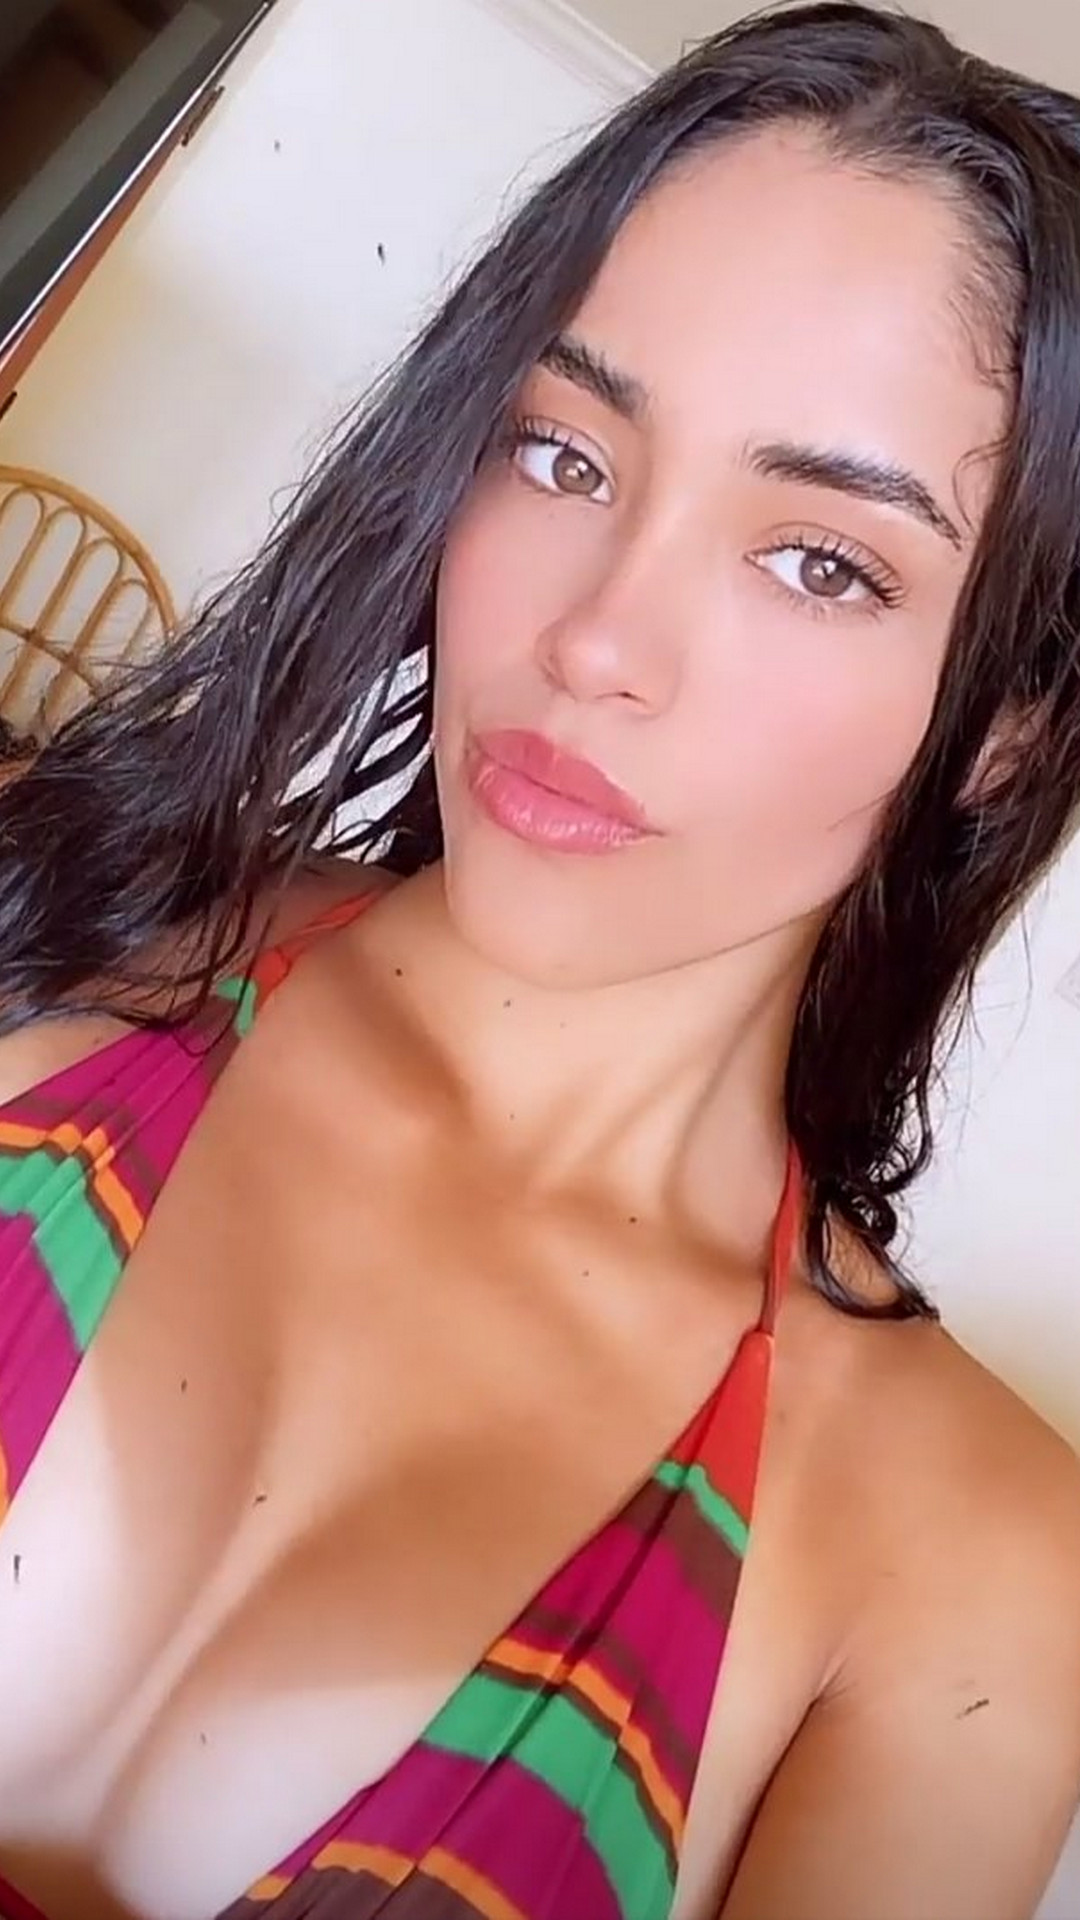 jimena hernandez twitter hot influencer